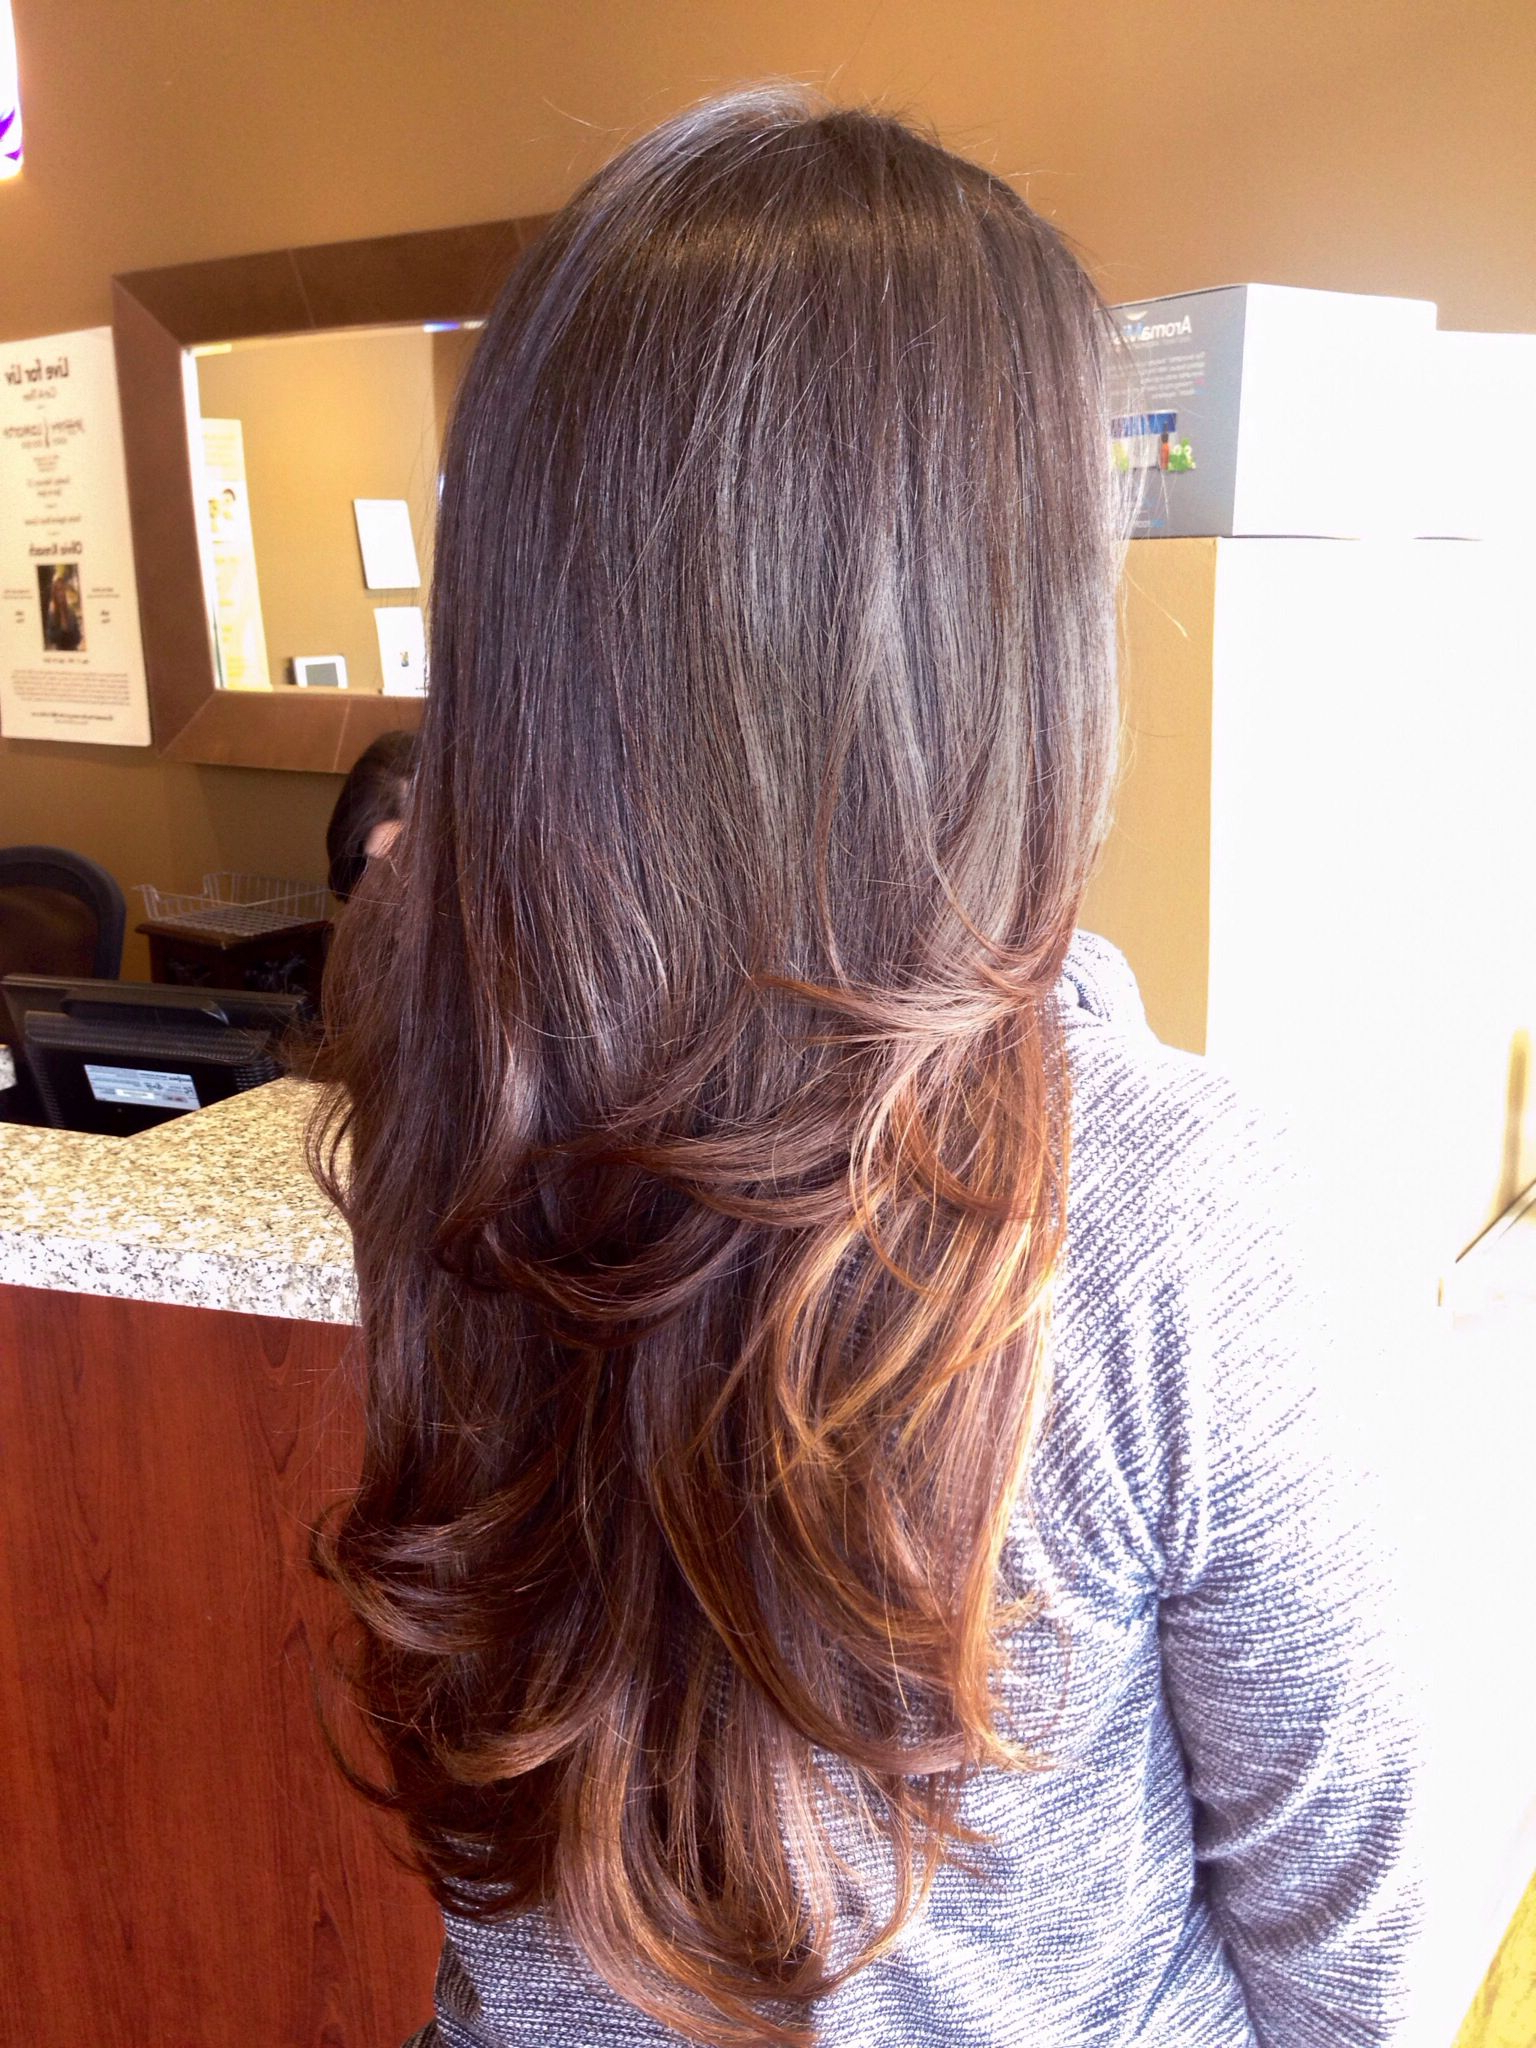 Flippy Bombshell Blowout With Medium Layers On Long Hair (View 12 of 20)